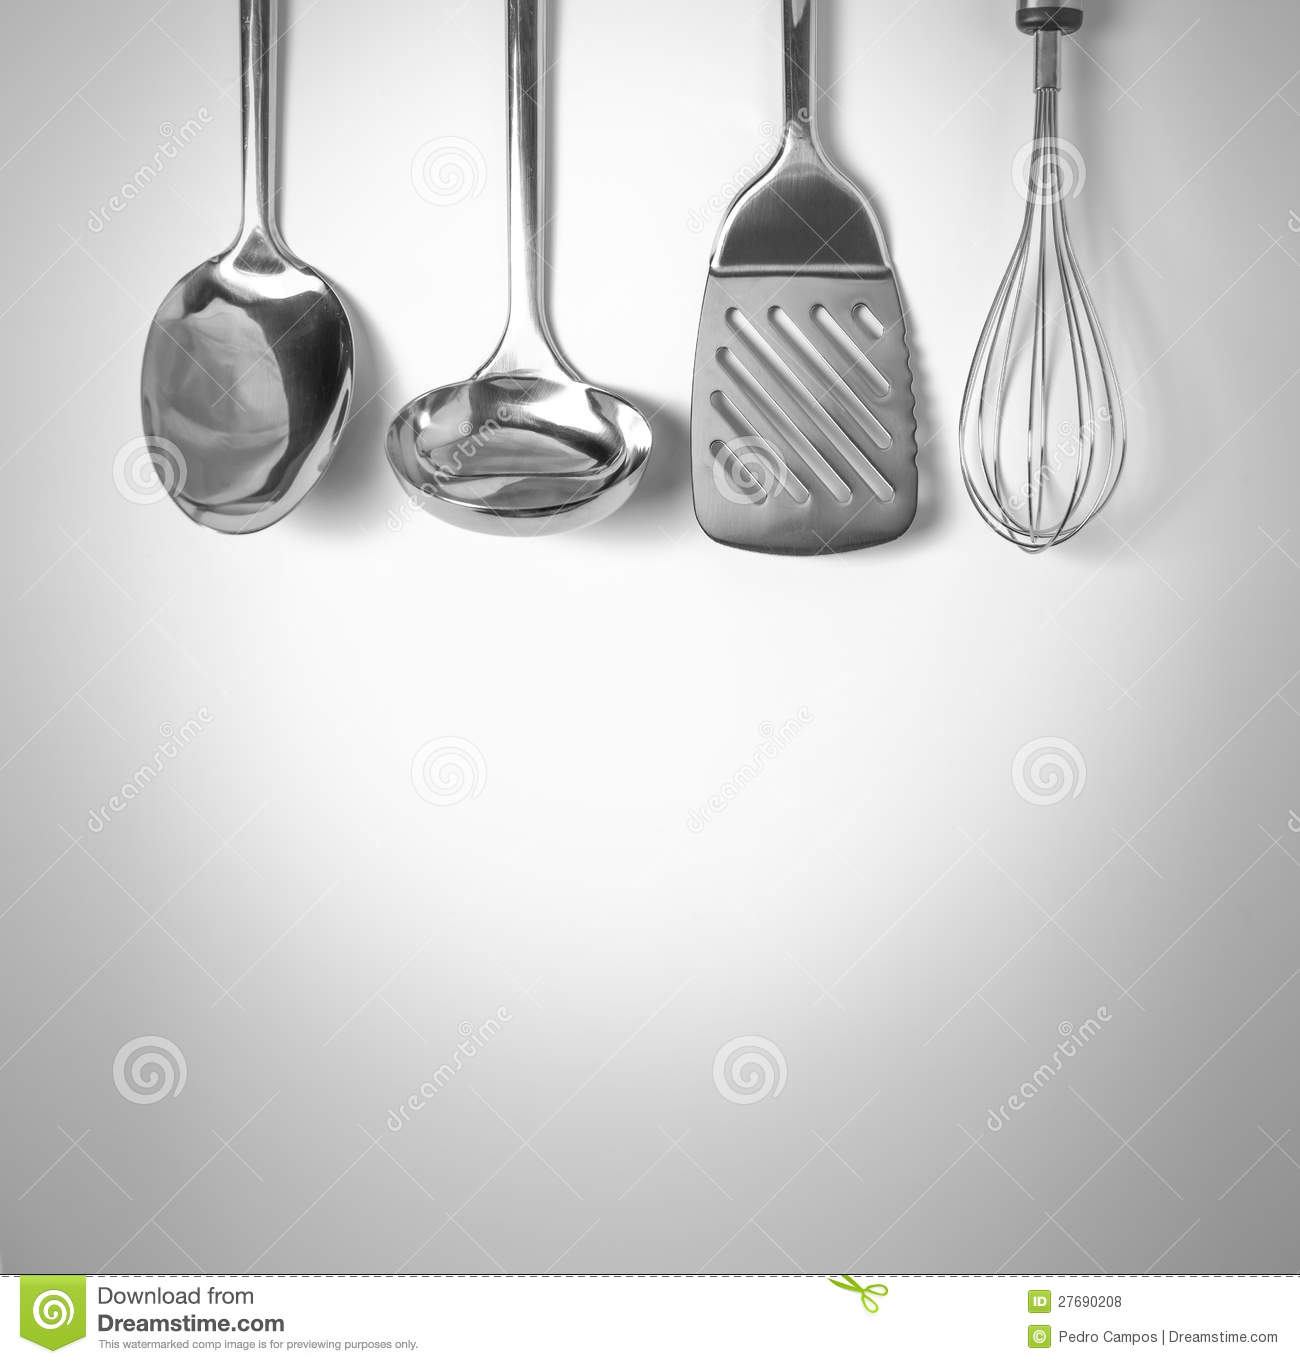 Kitchen Tools Background Royalty Free Stock Photos Image 27690208